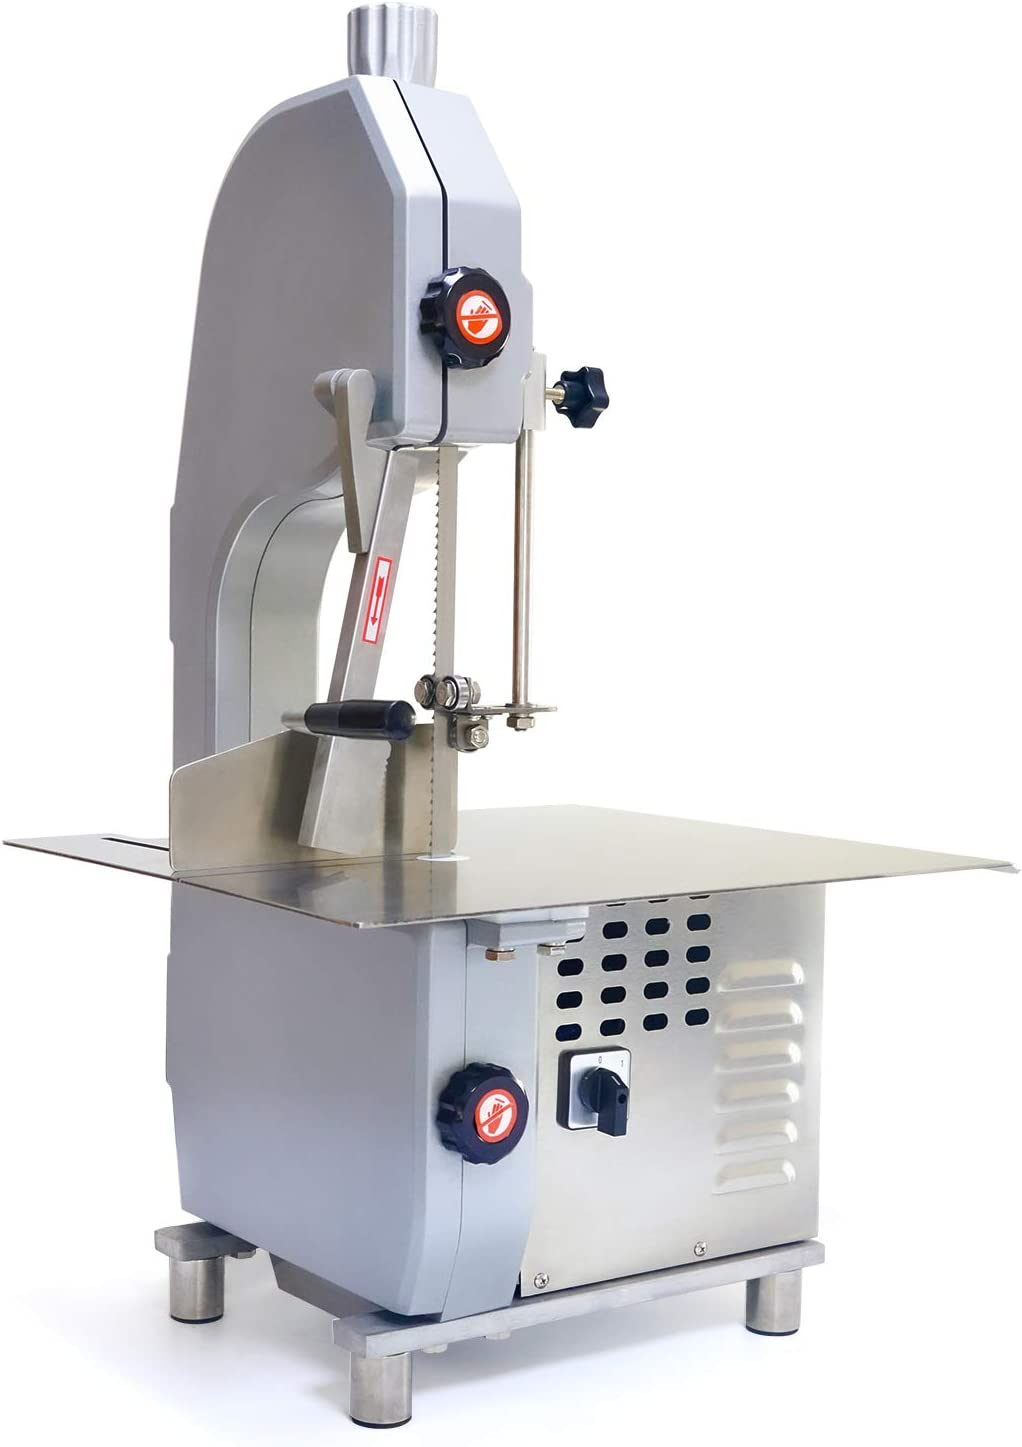 Rbaysale Electric Bone Cutting Machine 1500W Commercial Bone Saw Machine Frozen Meat Slicer Large Table Saw Butcher Band Saw Blades Cutter Thickness Adjustable for Cut Bone Frozen Meat